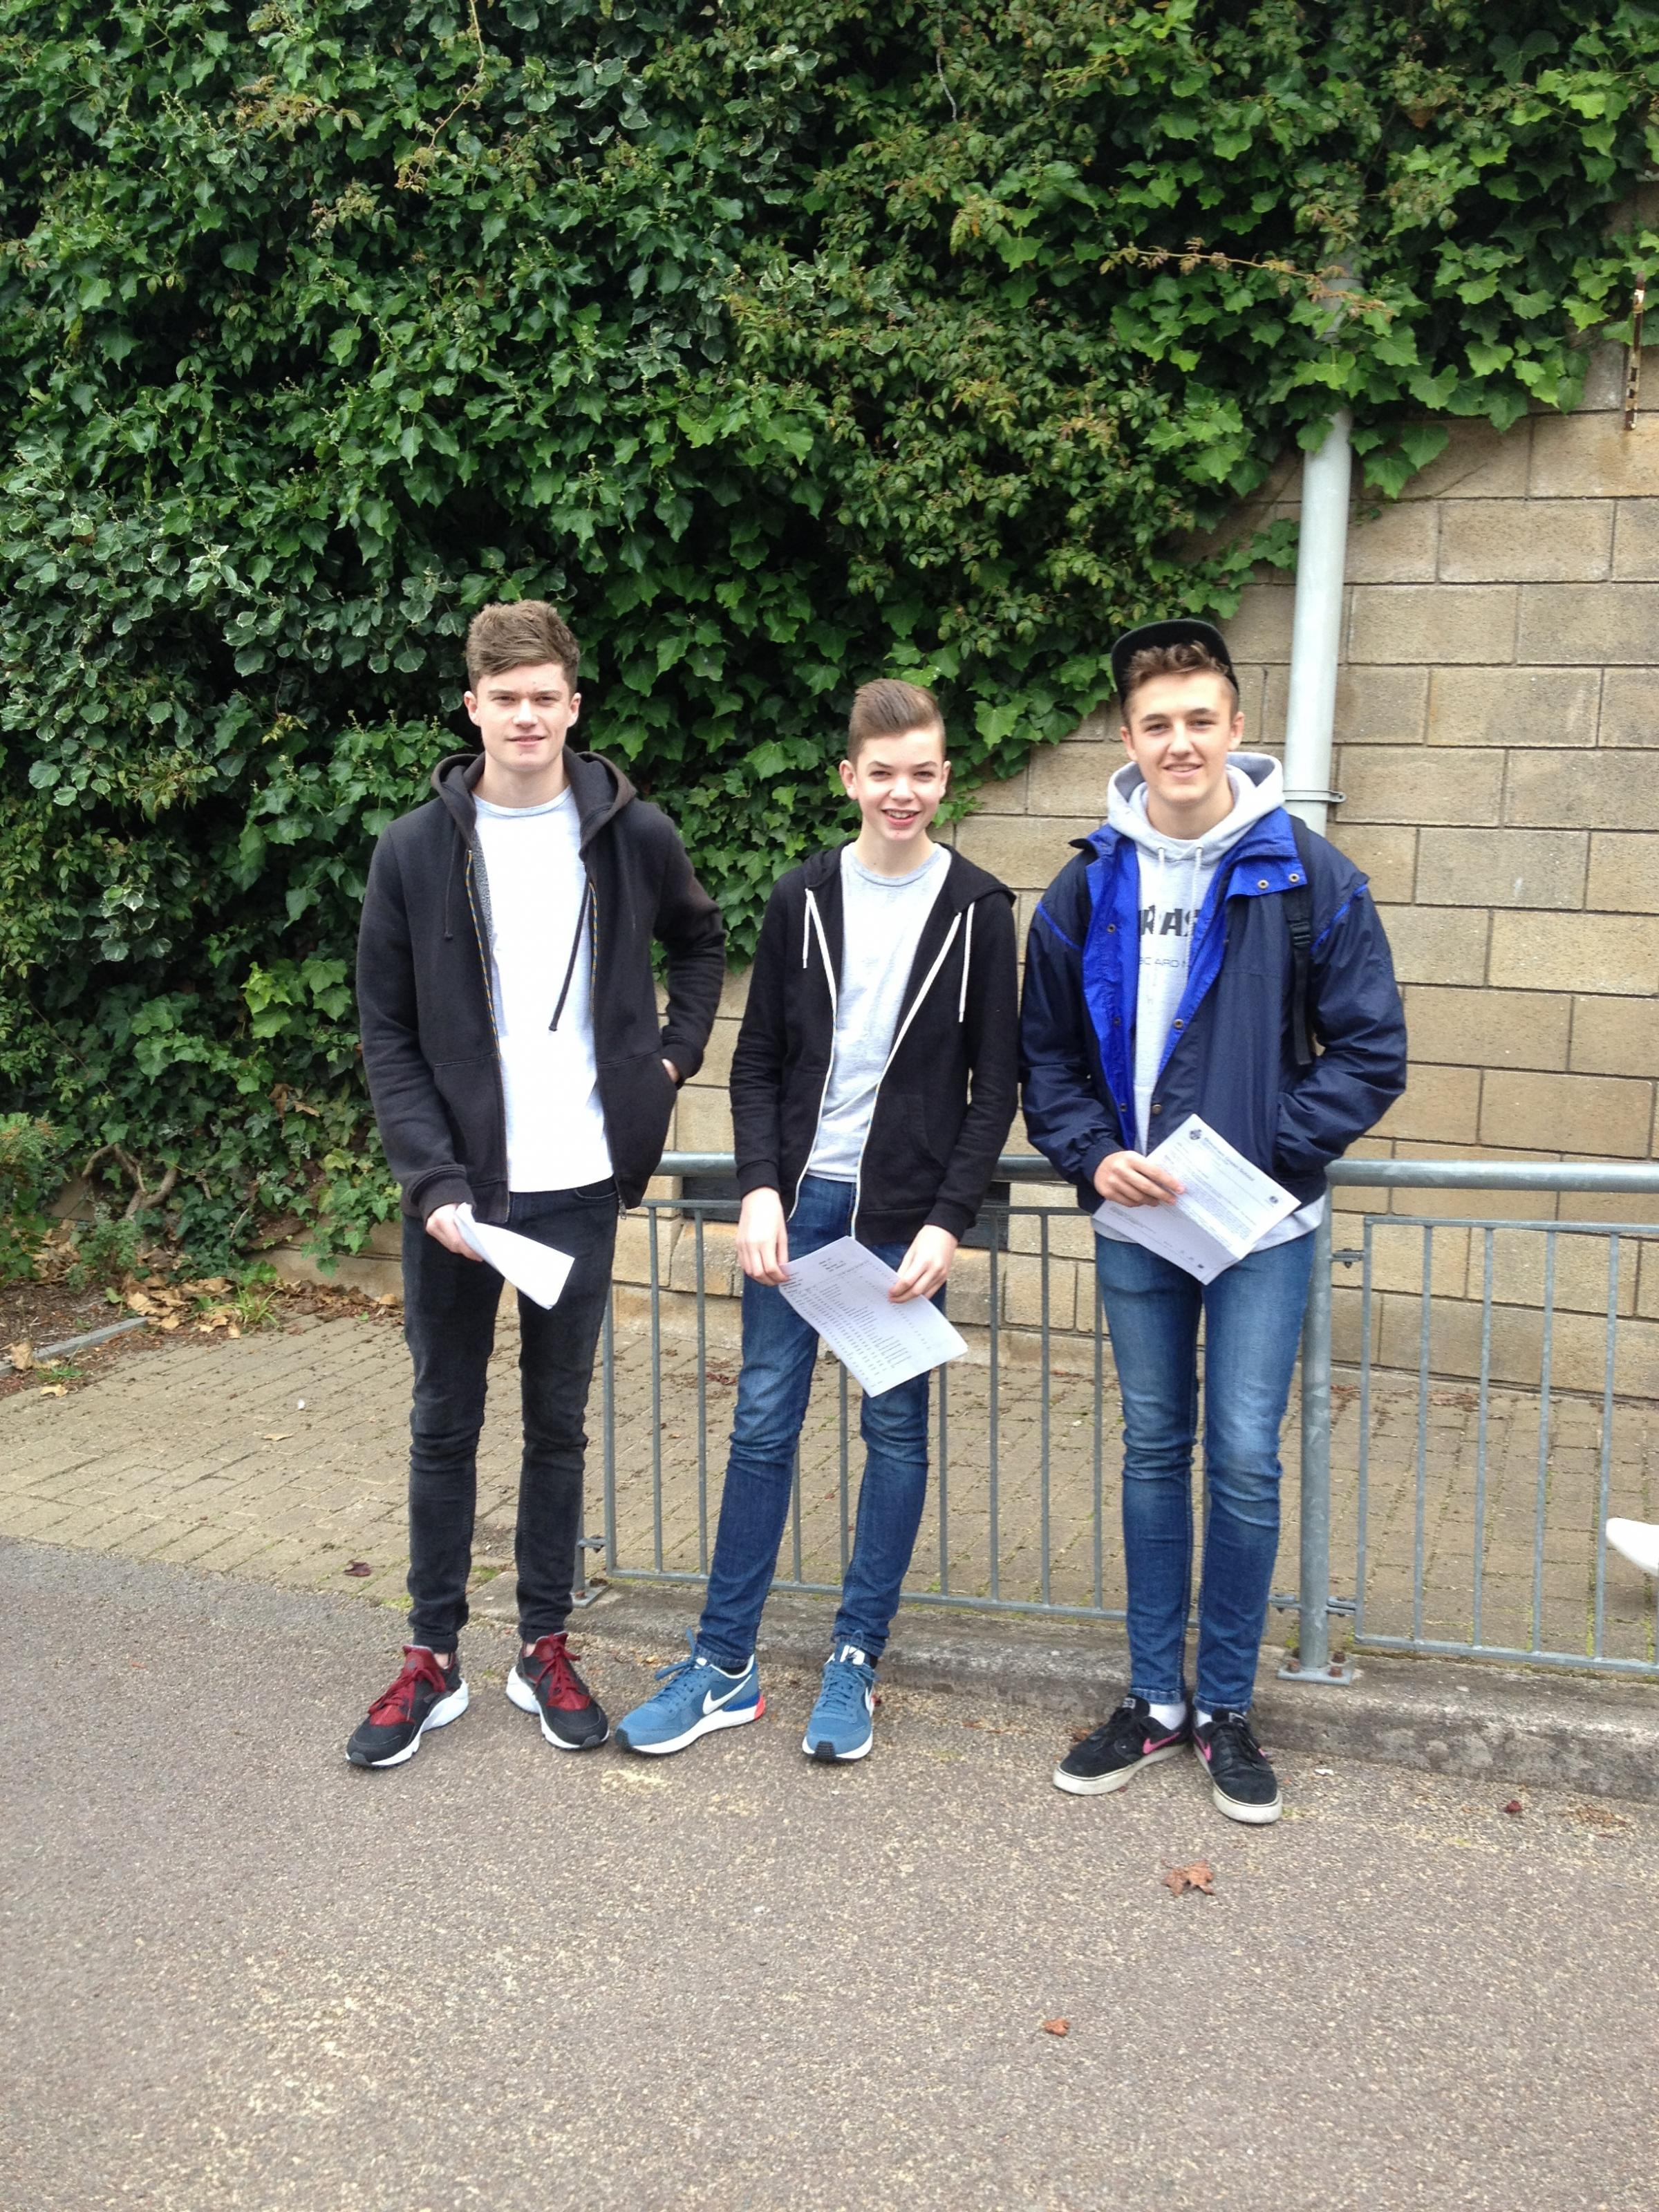 Students celebrate their GCSE results at Brimsham Green School in Yate